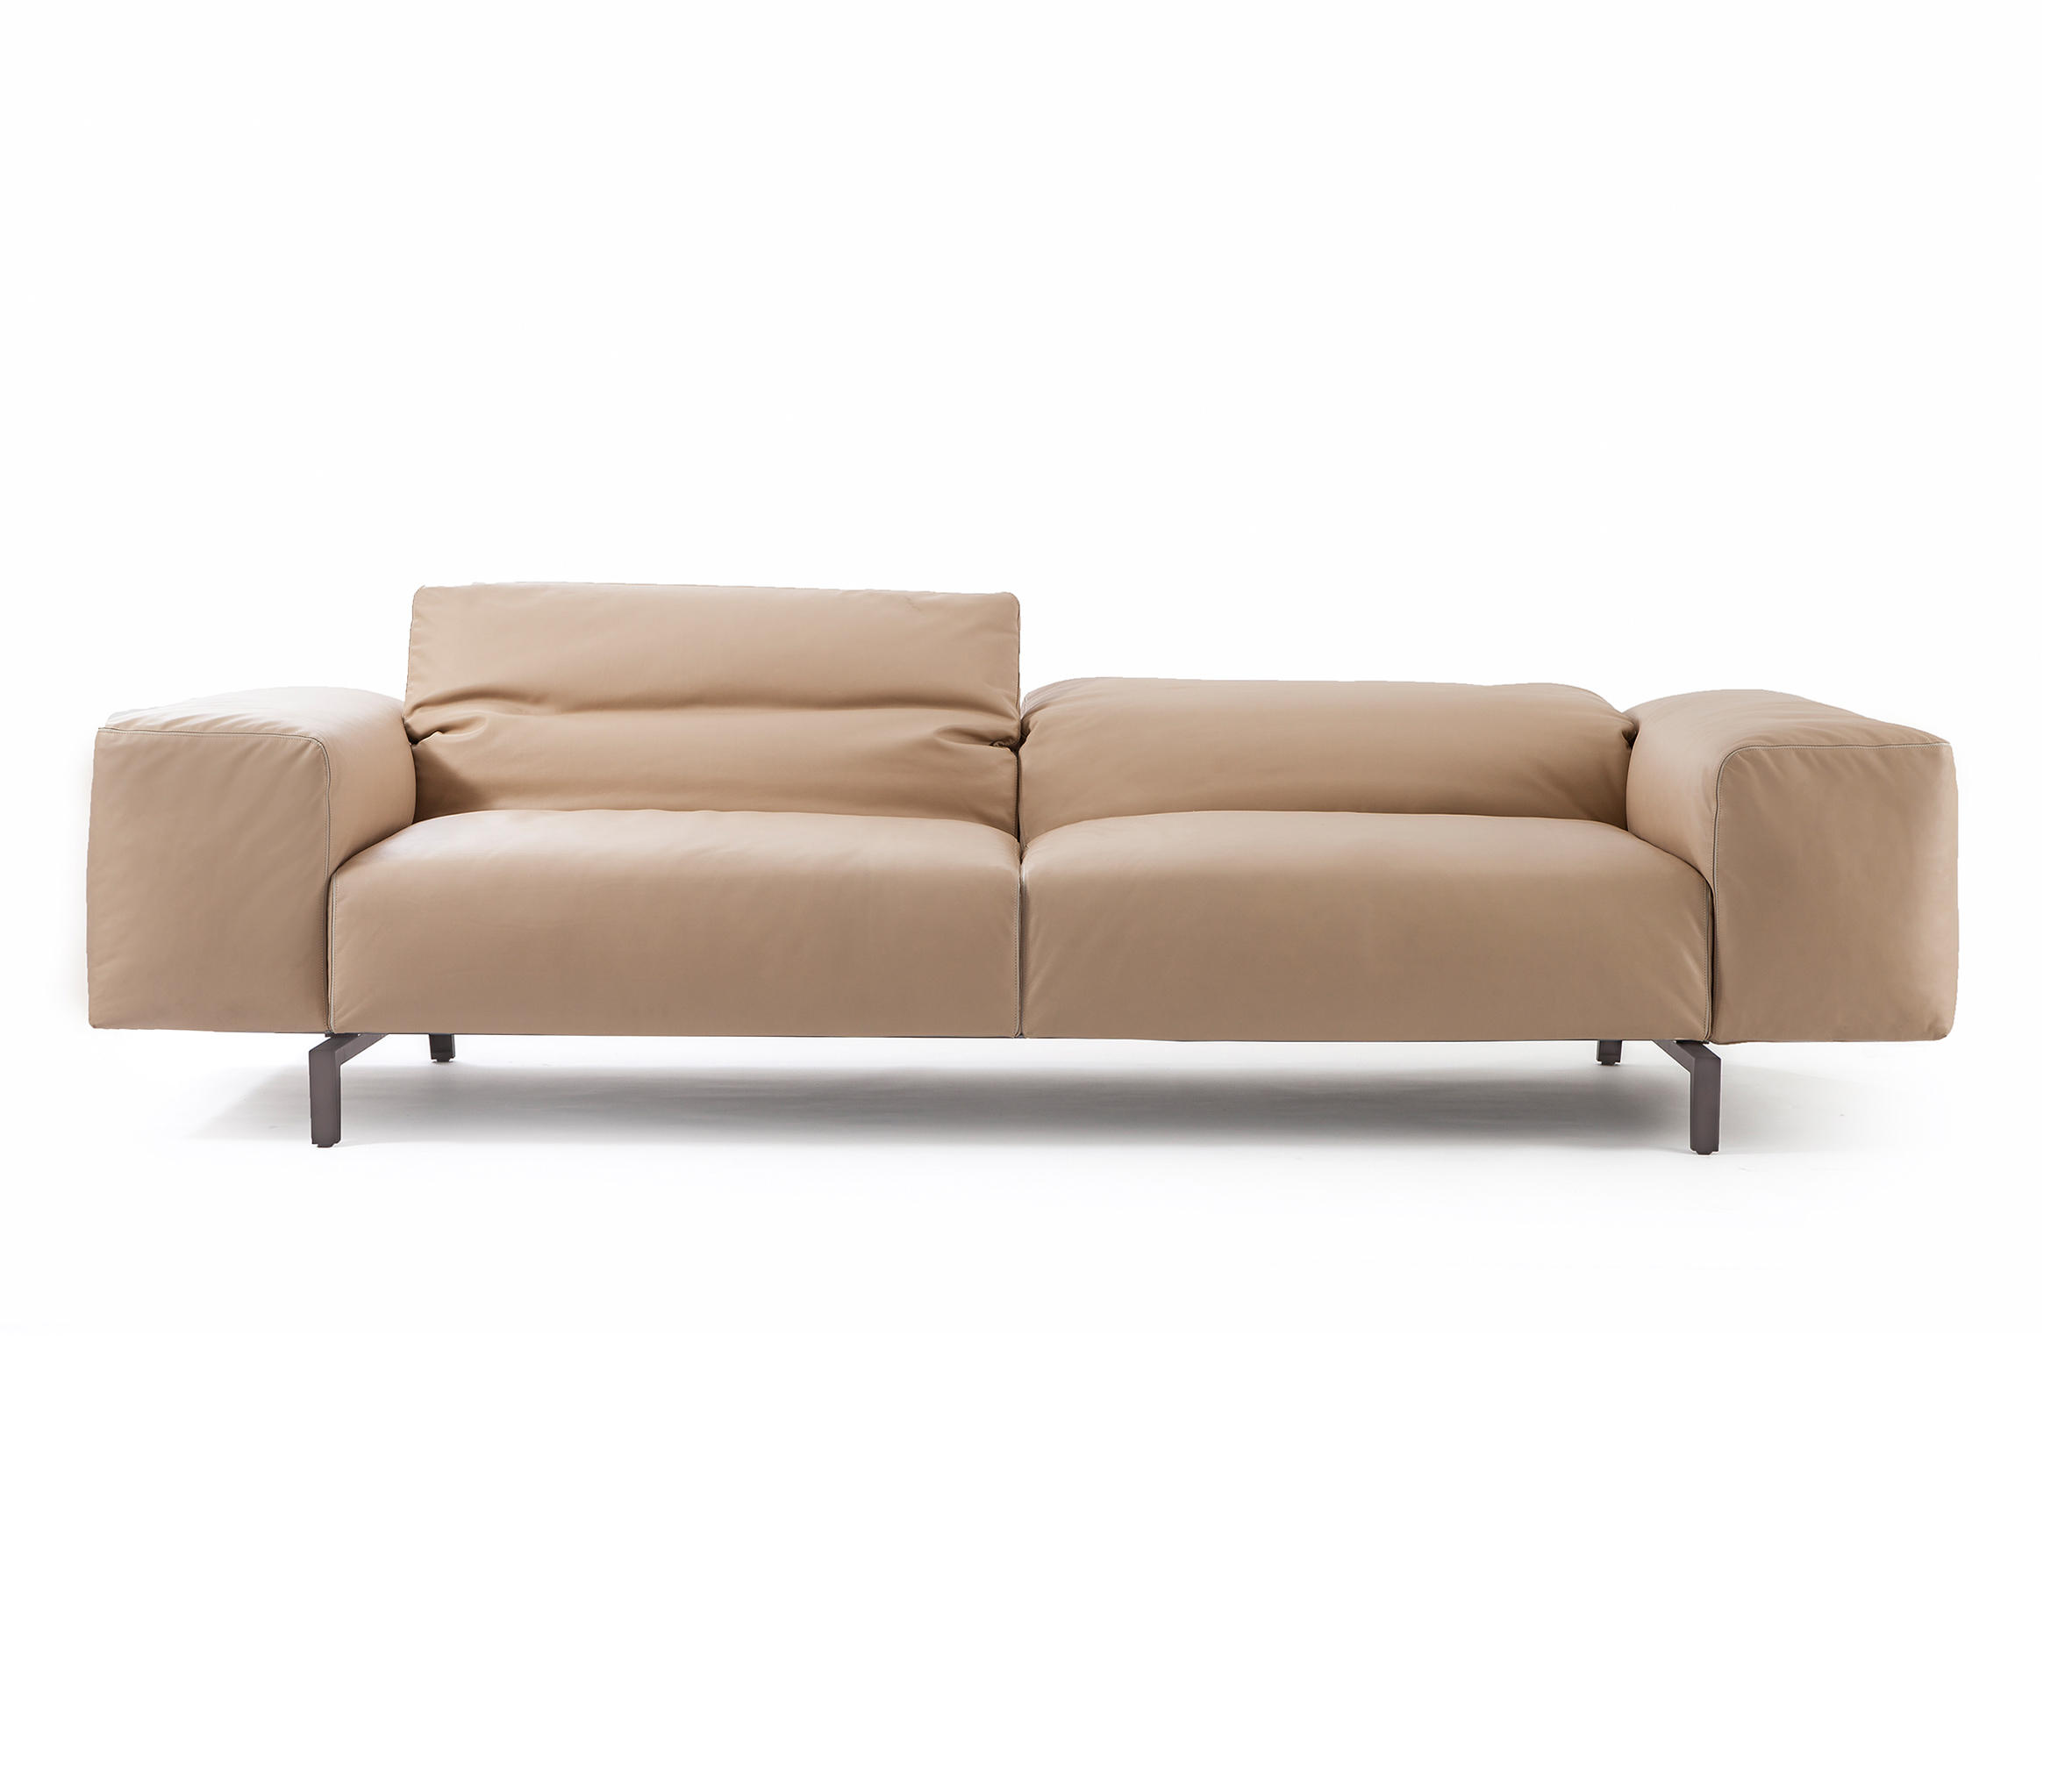 Piero Lissoni Modular Sofa 204 02 Scighera Two Seater Sofa Sofas From Cassina Architonic